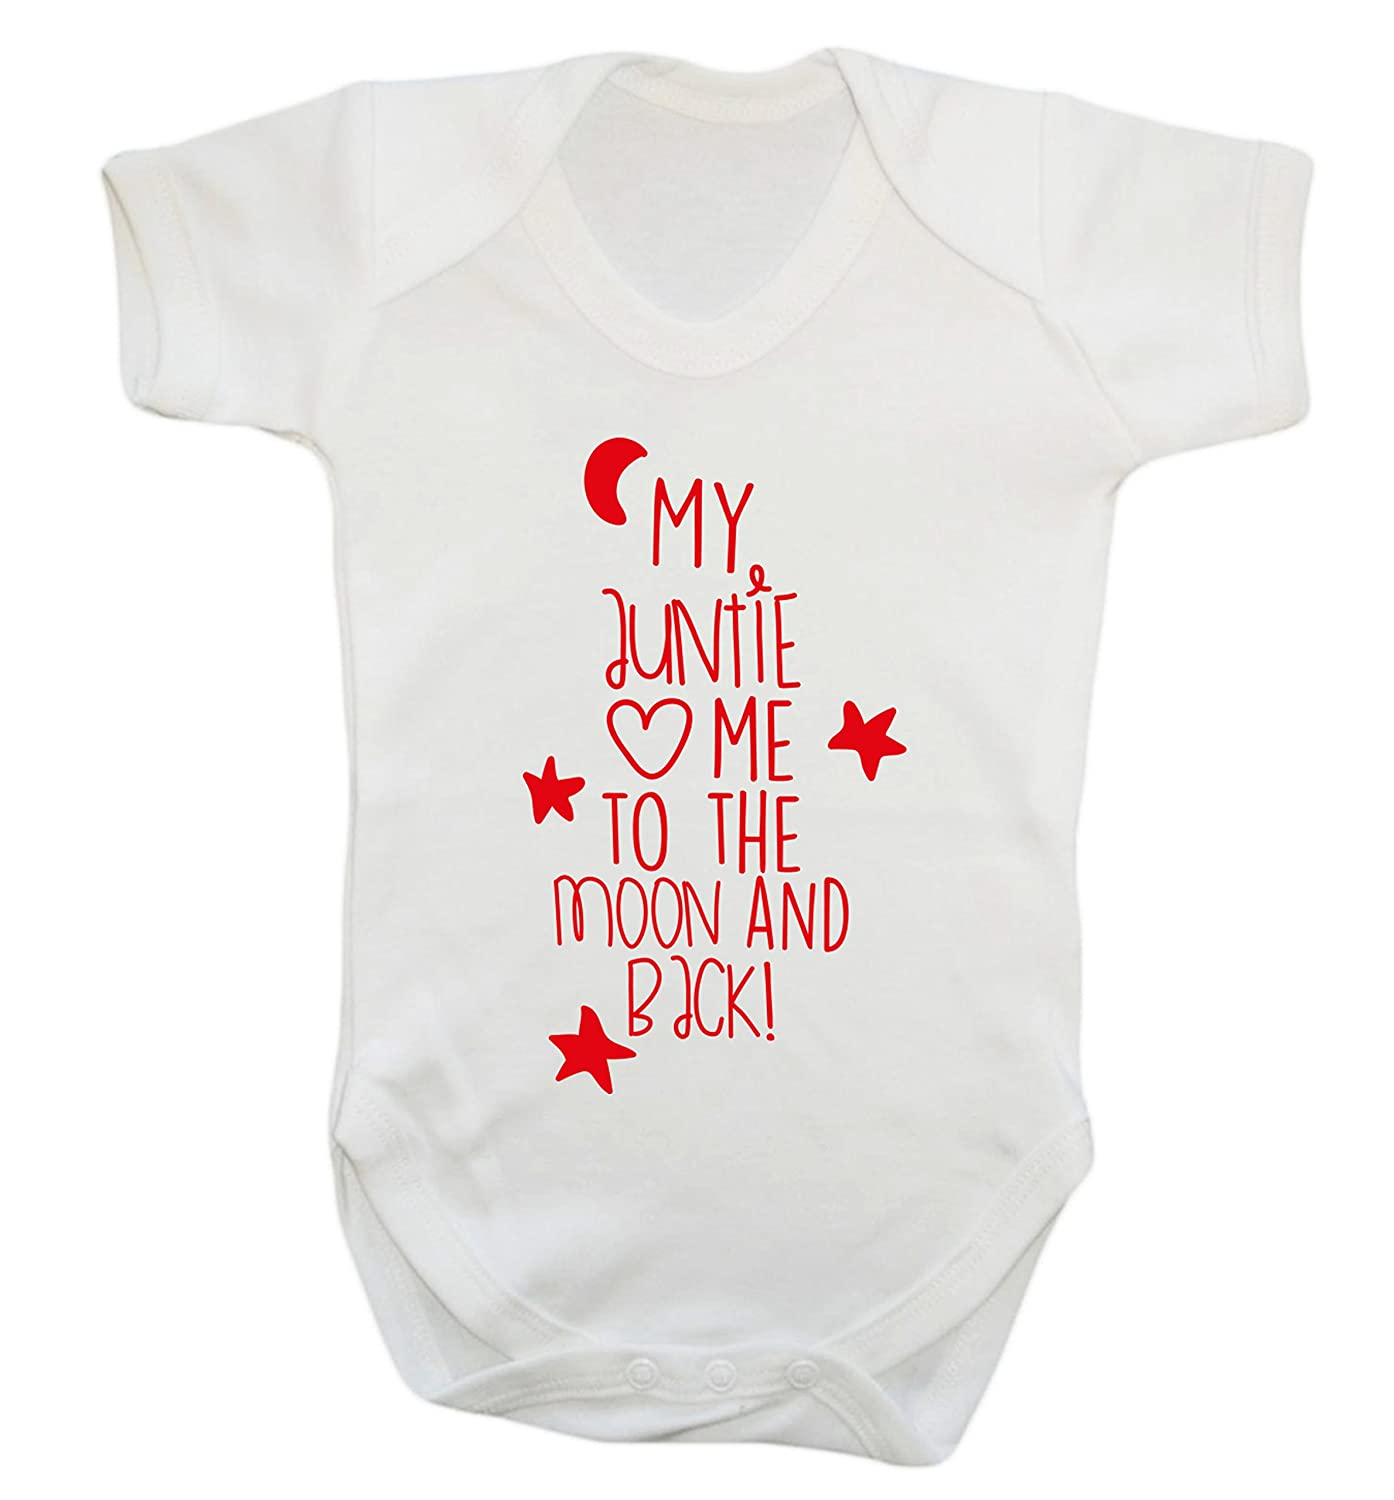 My auntie loves me to the moon and back baby vest bodysuit babygrow